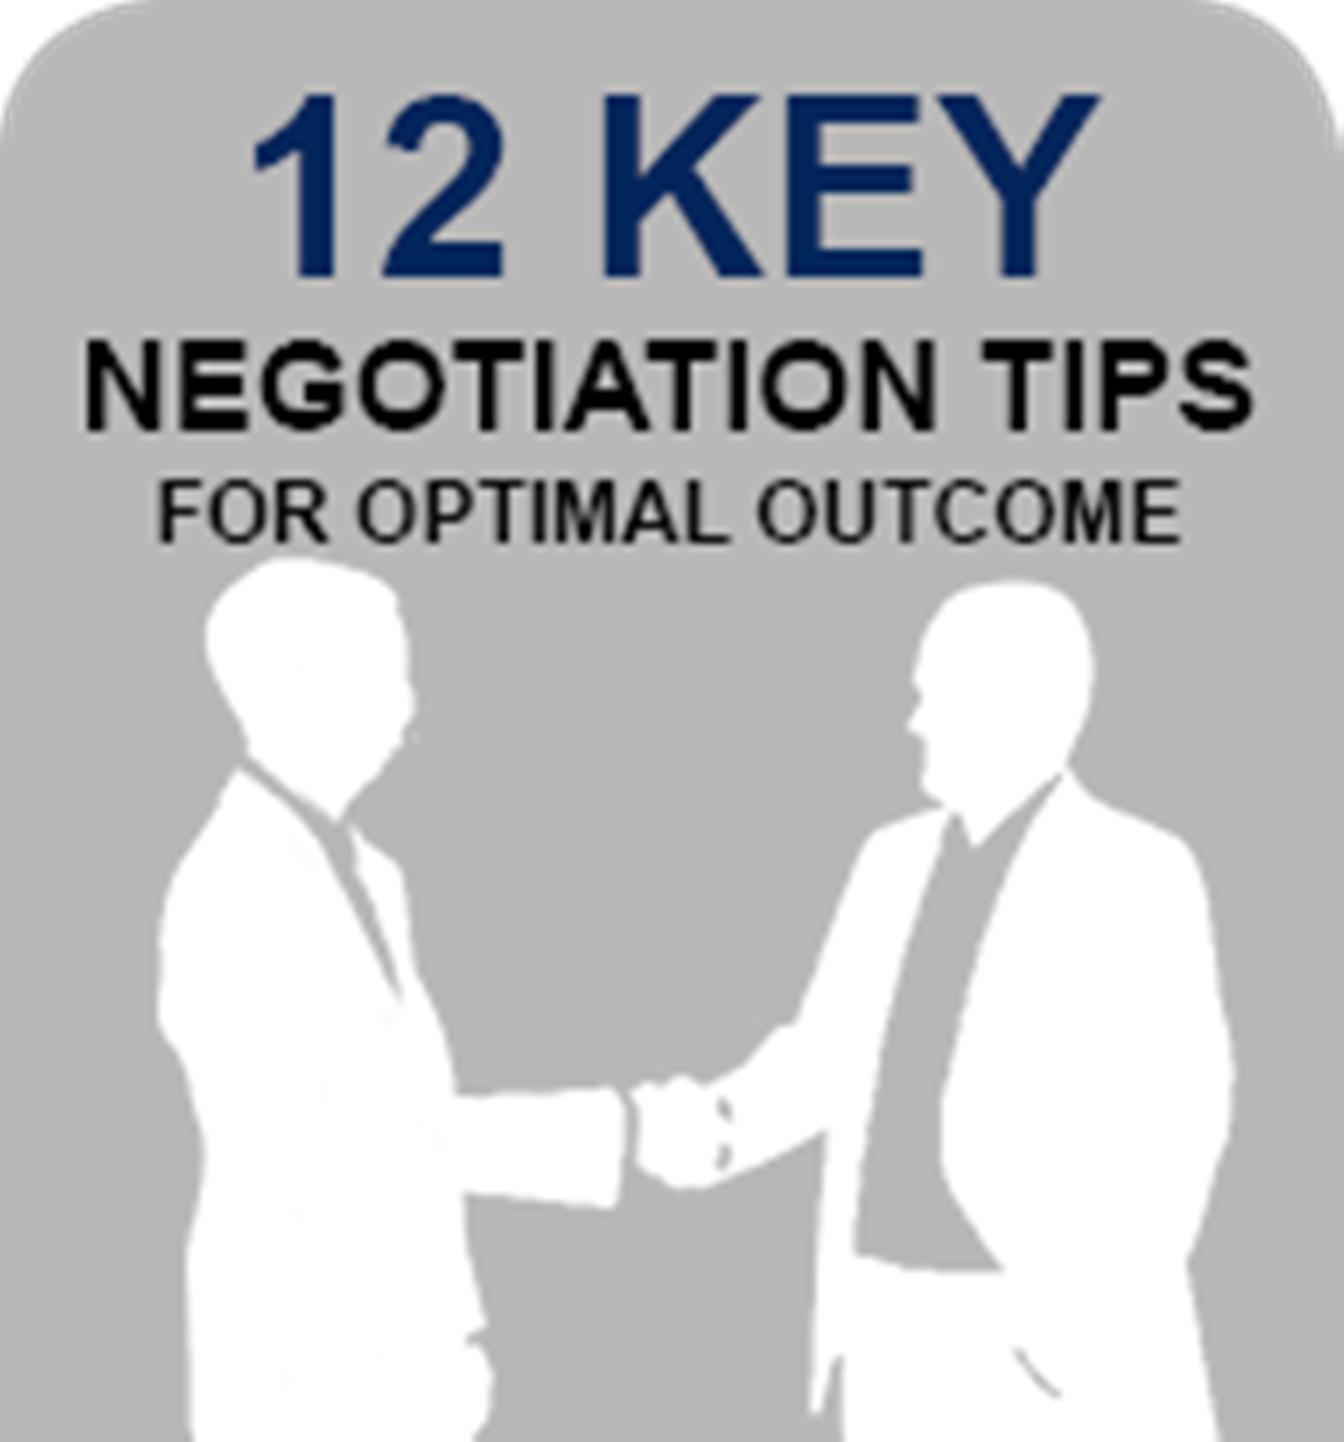 Tech M&A Monthly: M&A Negotiation Tips #7 & 8